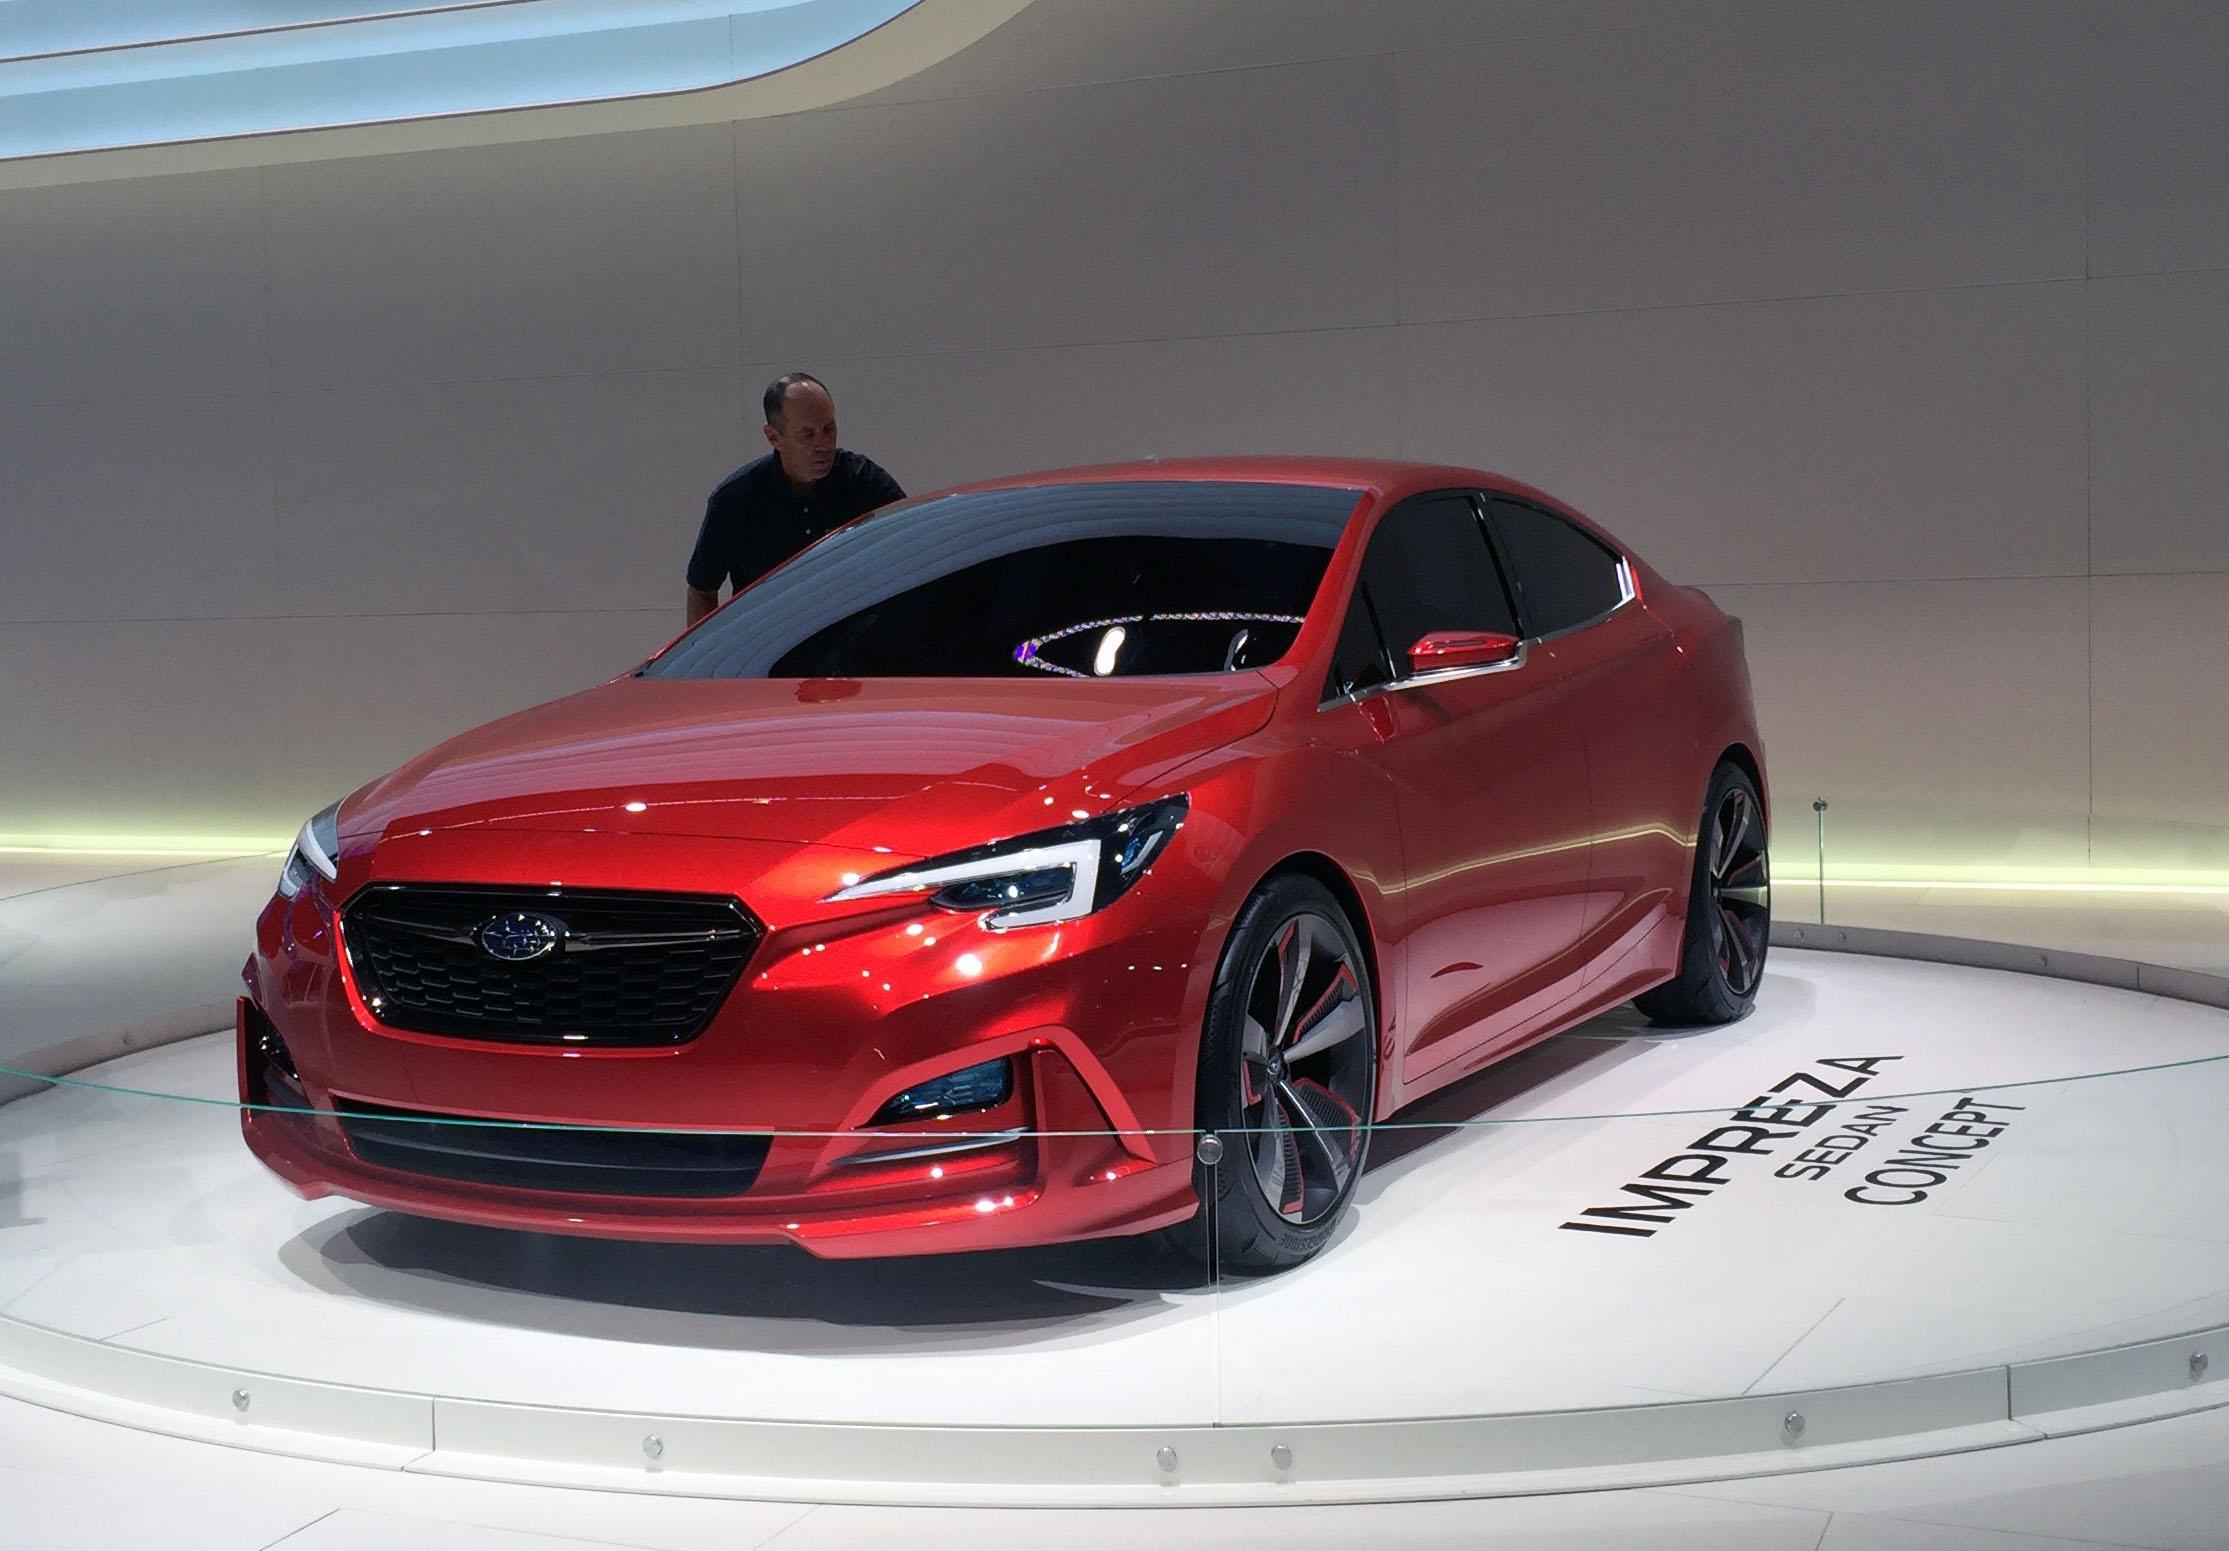 Subaru Impreza Concept (Photo by Jill Ciminillo)